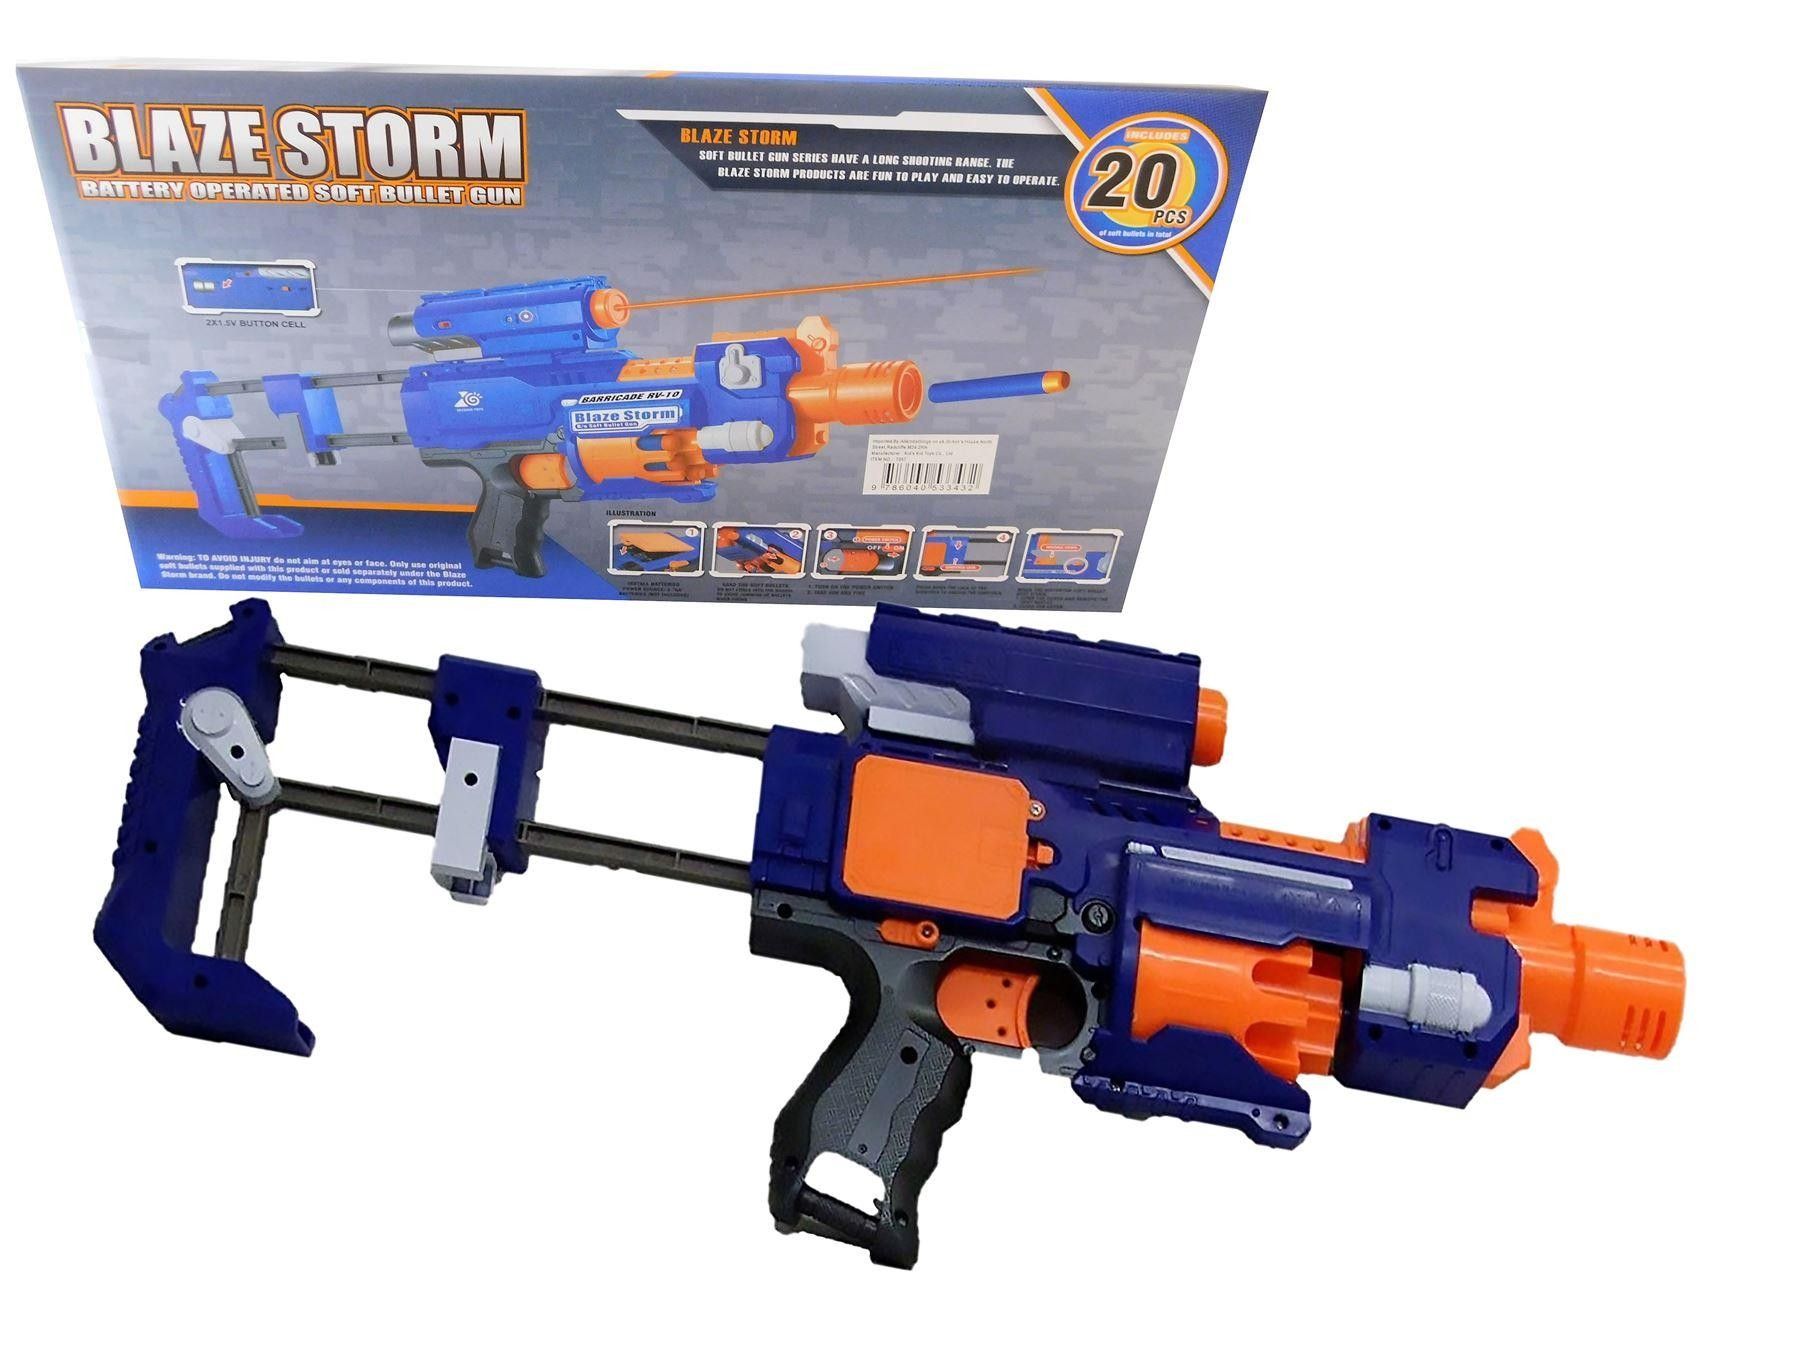 Blaze Storm Semi Auto Battery Operated Nerf Style Gun With 20 x Soft Bullets